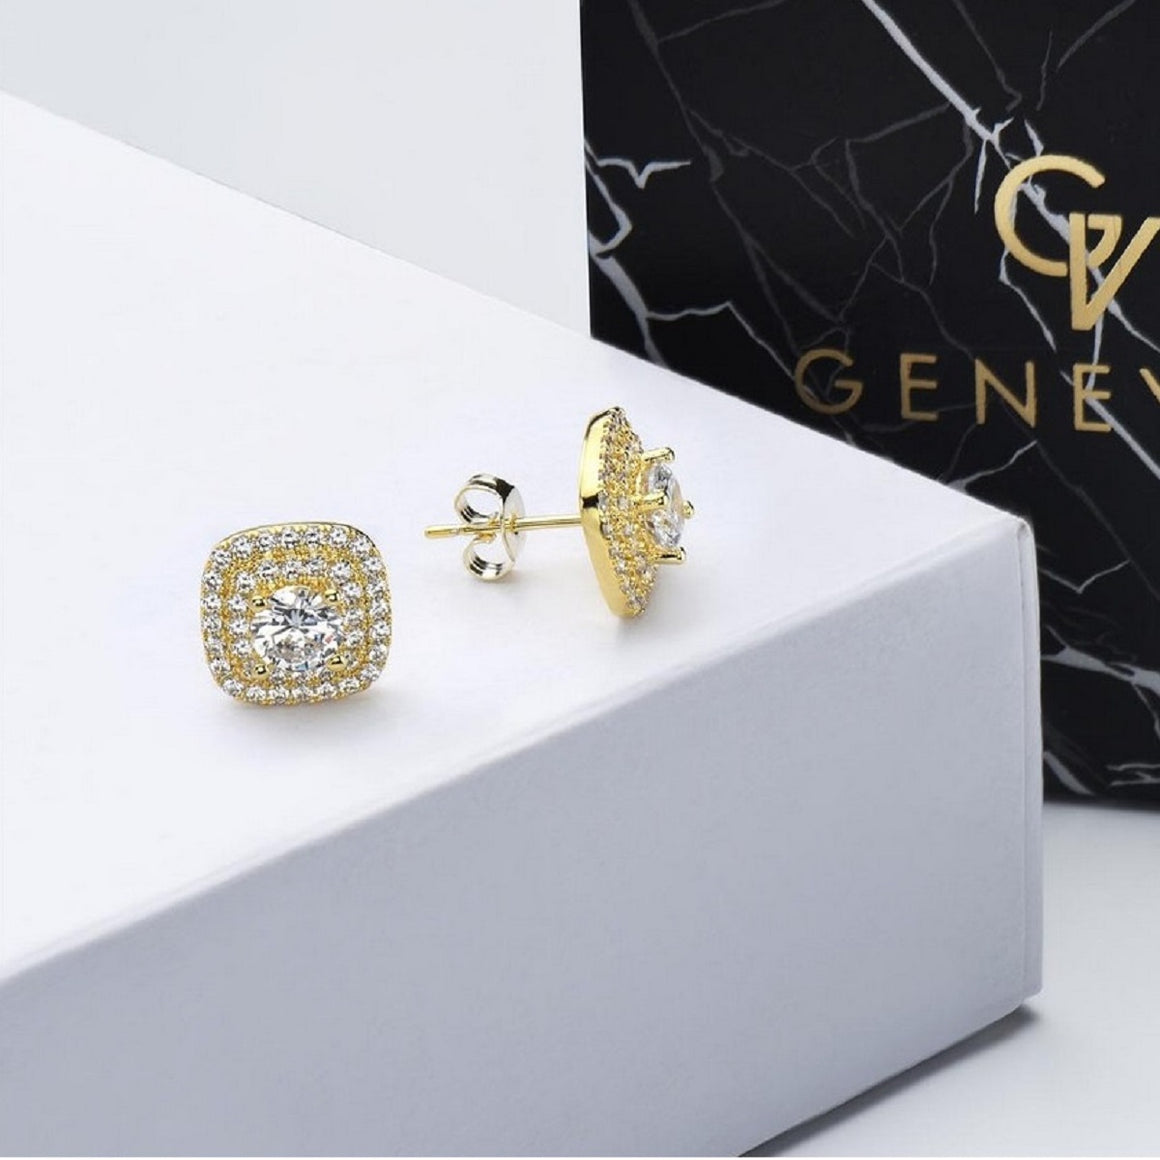 Genevive Classic 14K Gold Plated Halo Stud Earrings